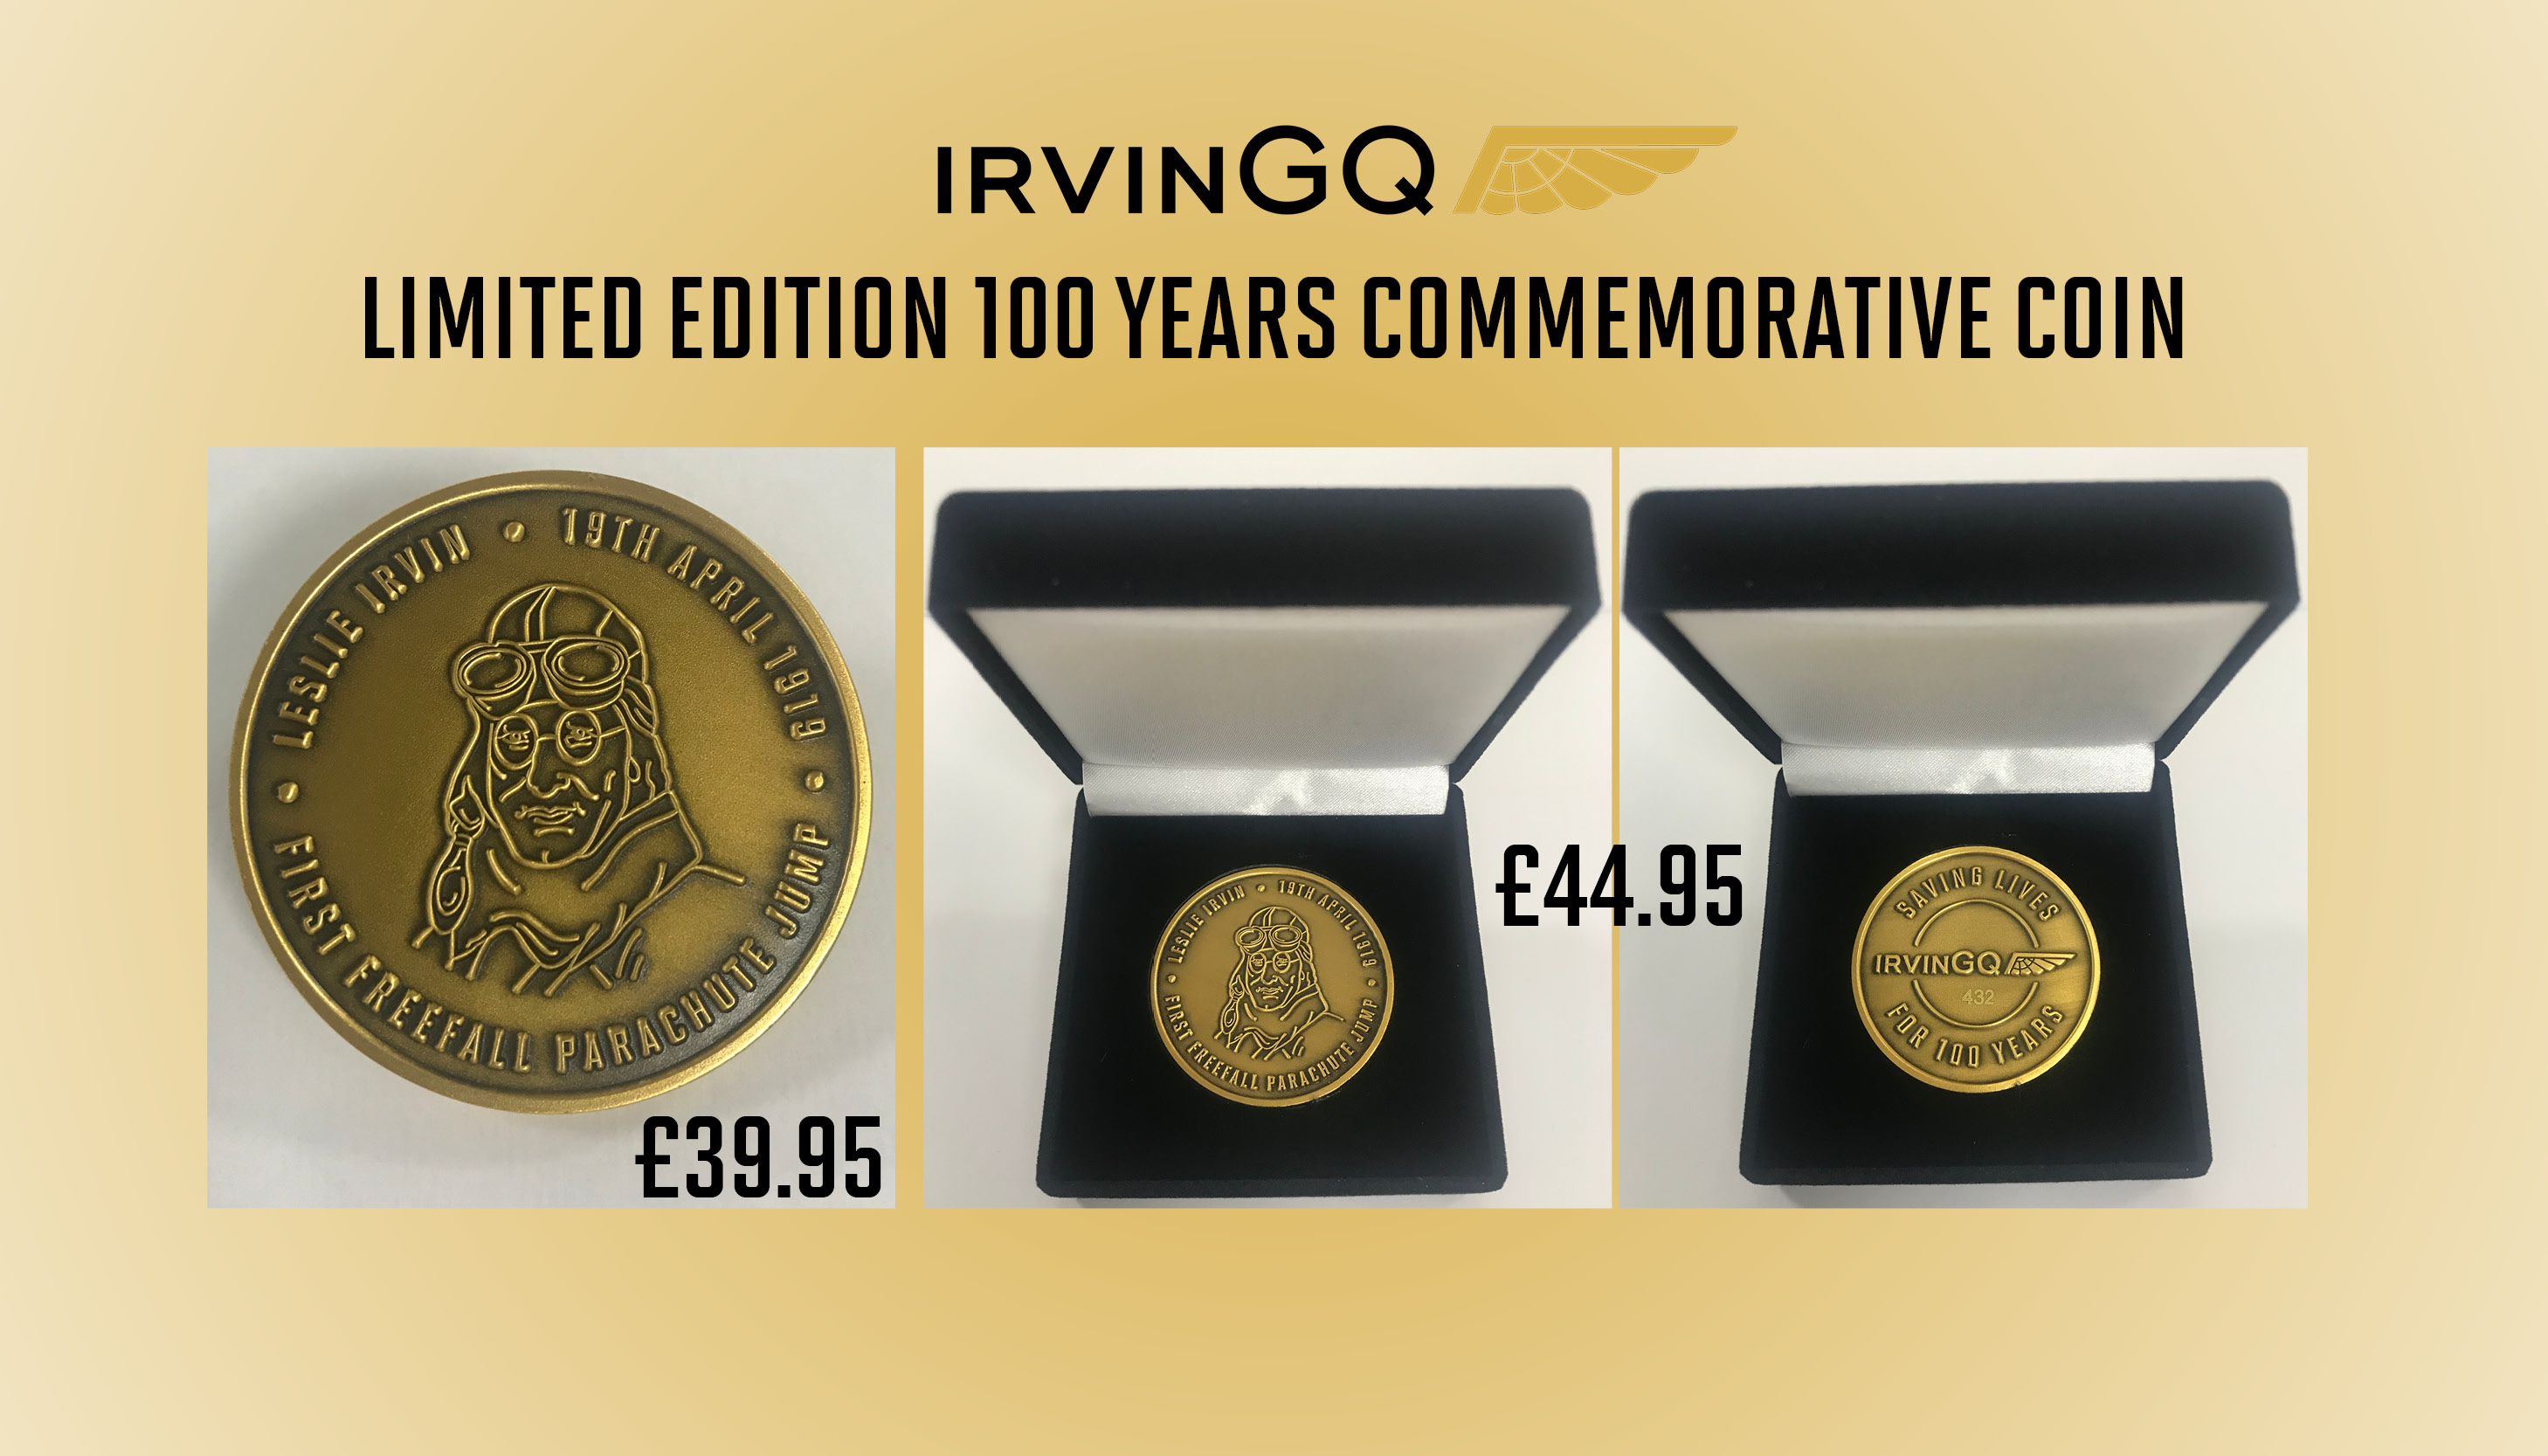 IrvinGQ 100 Year Commemorative Coin